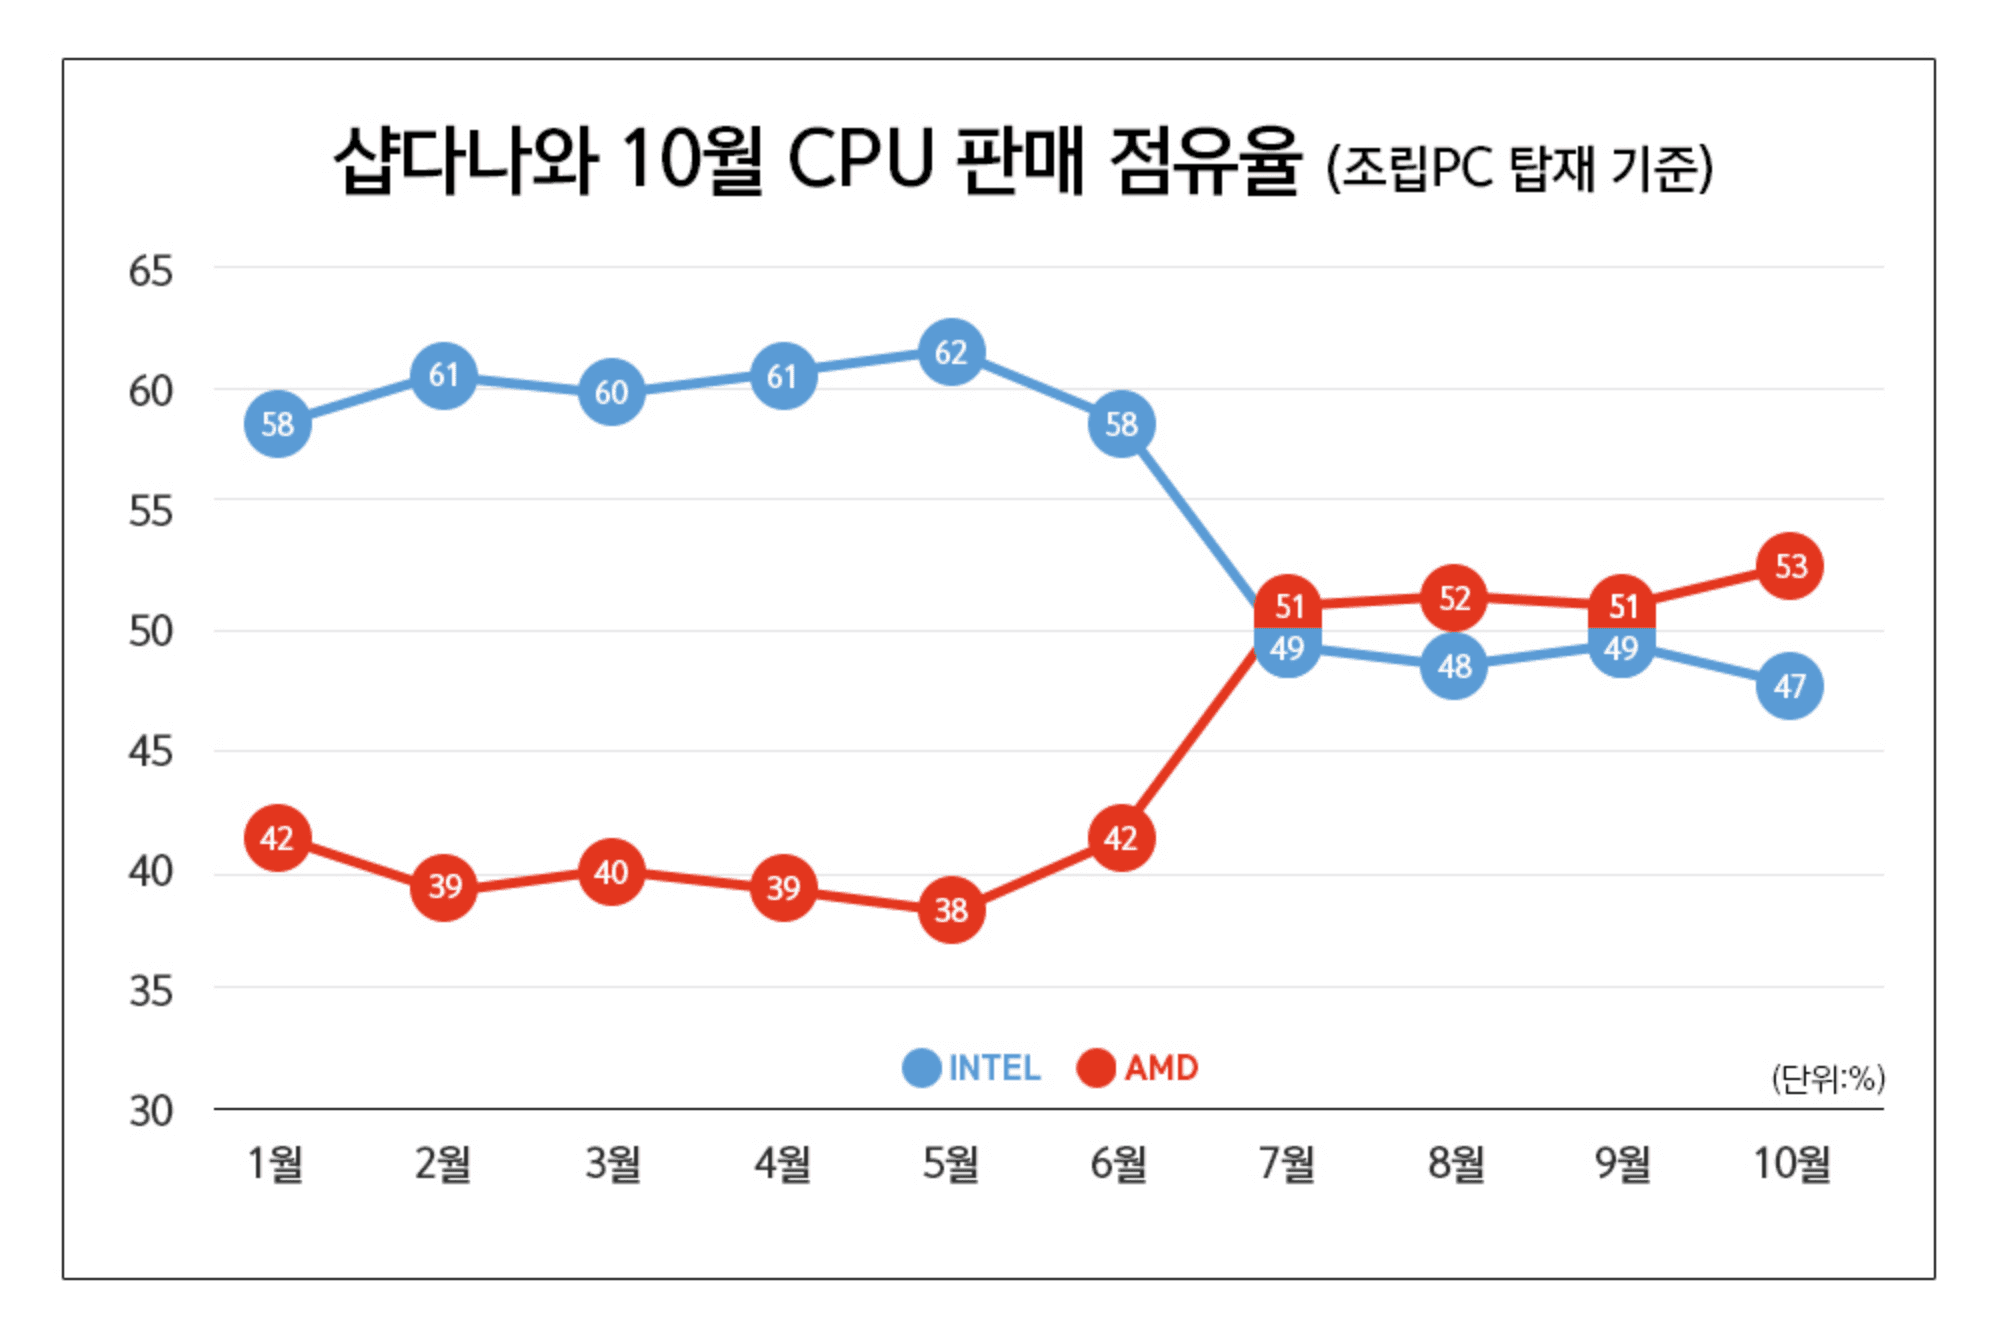 AMD Reaches All-time high 53 percent Market Share in South Korea